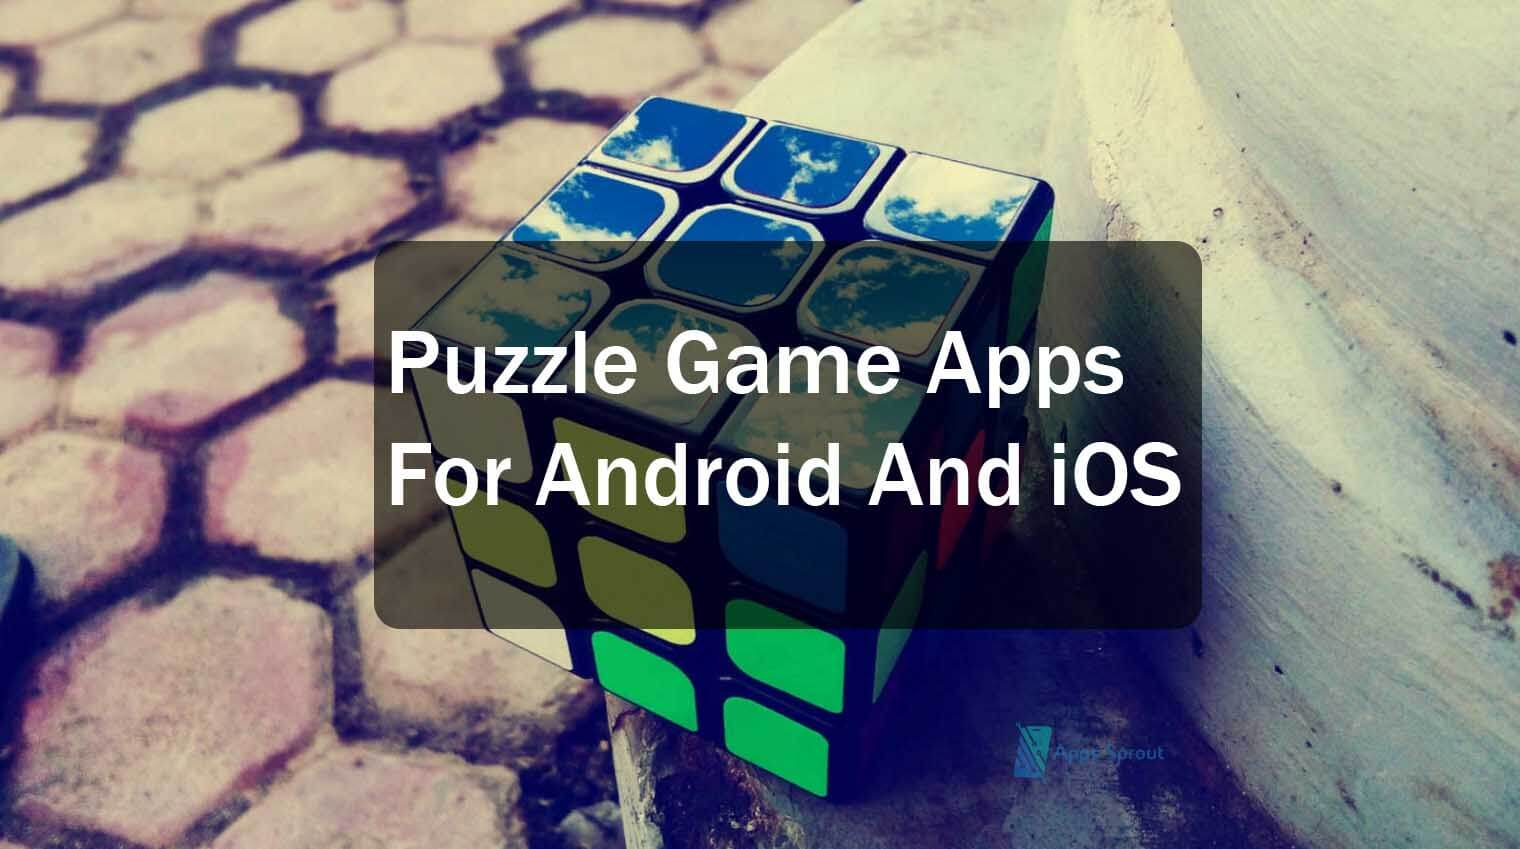 Puzzle Game Apps